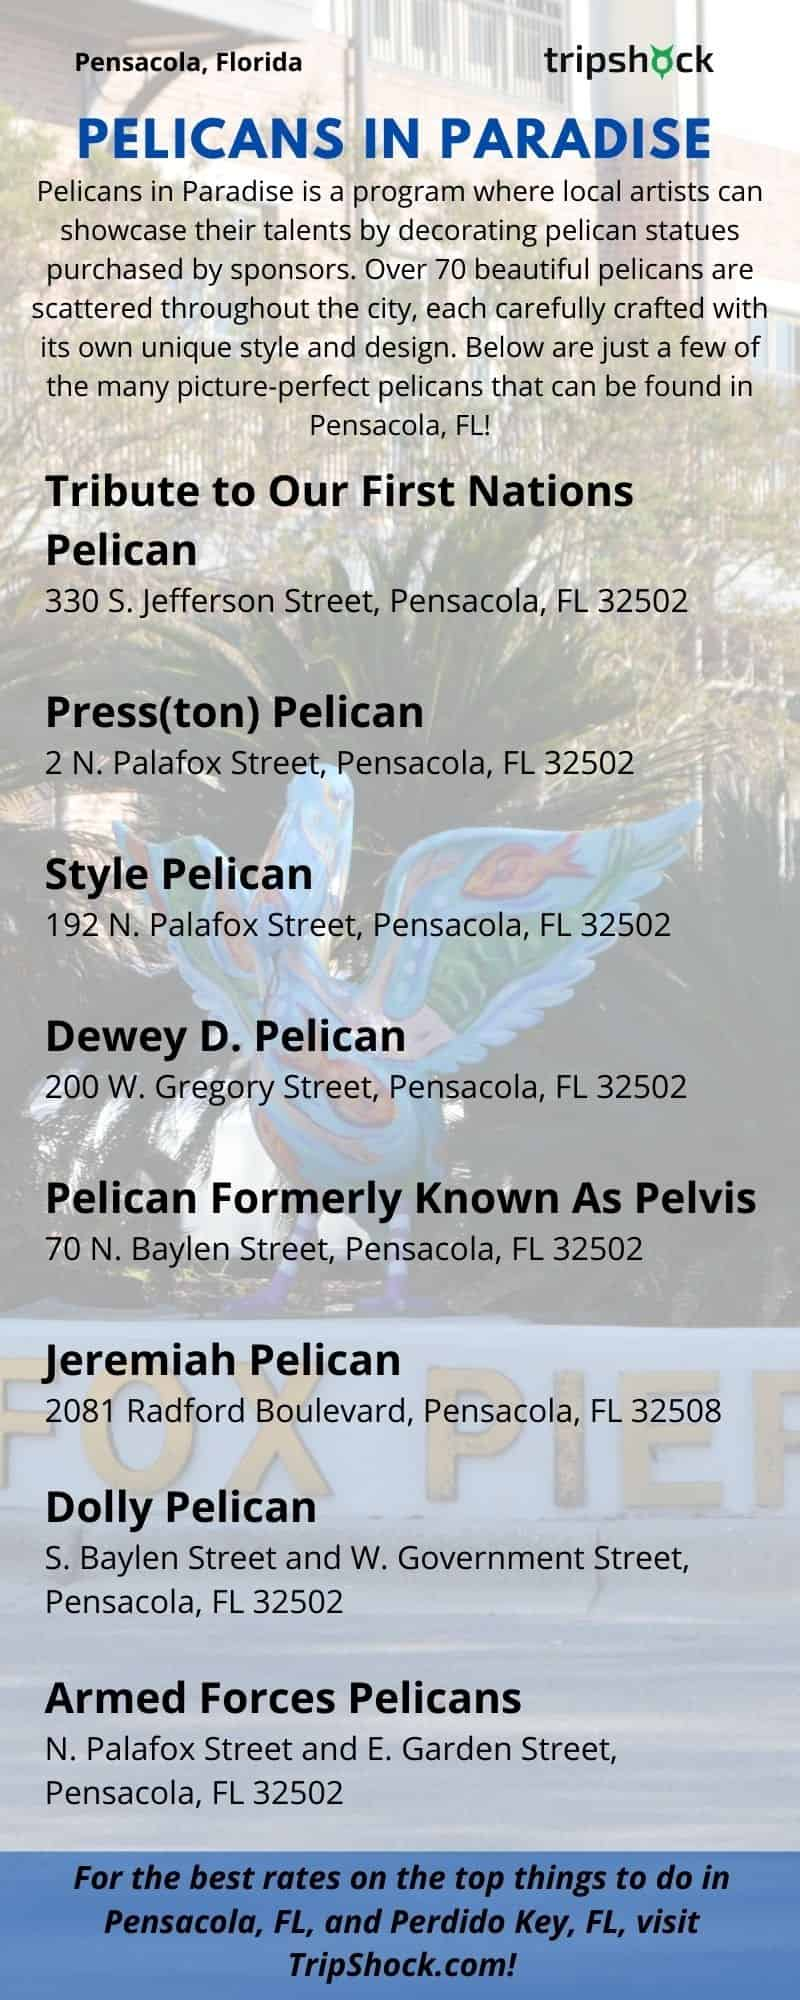 Where to Find Pelicans in Paradise in Pensacola